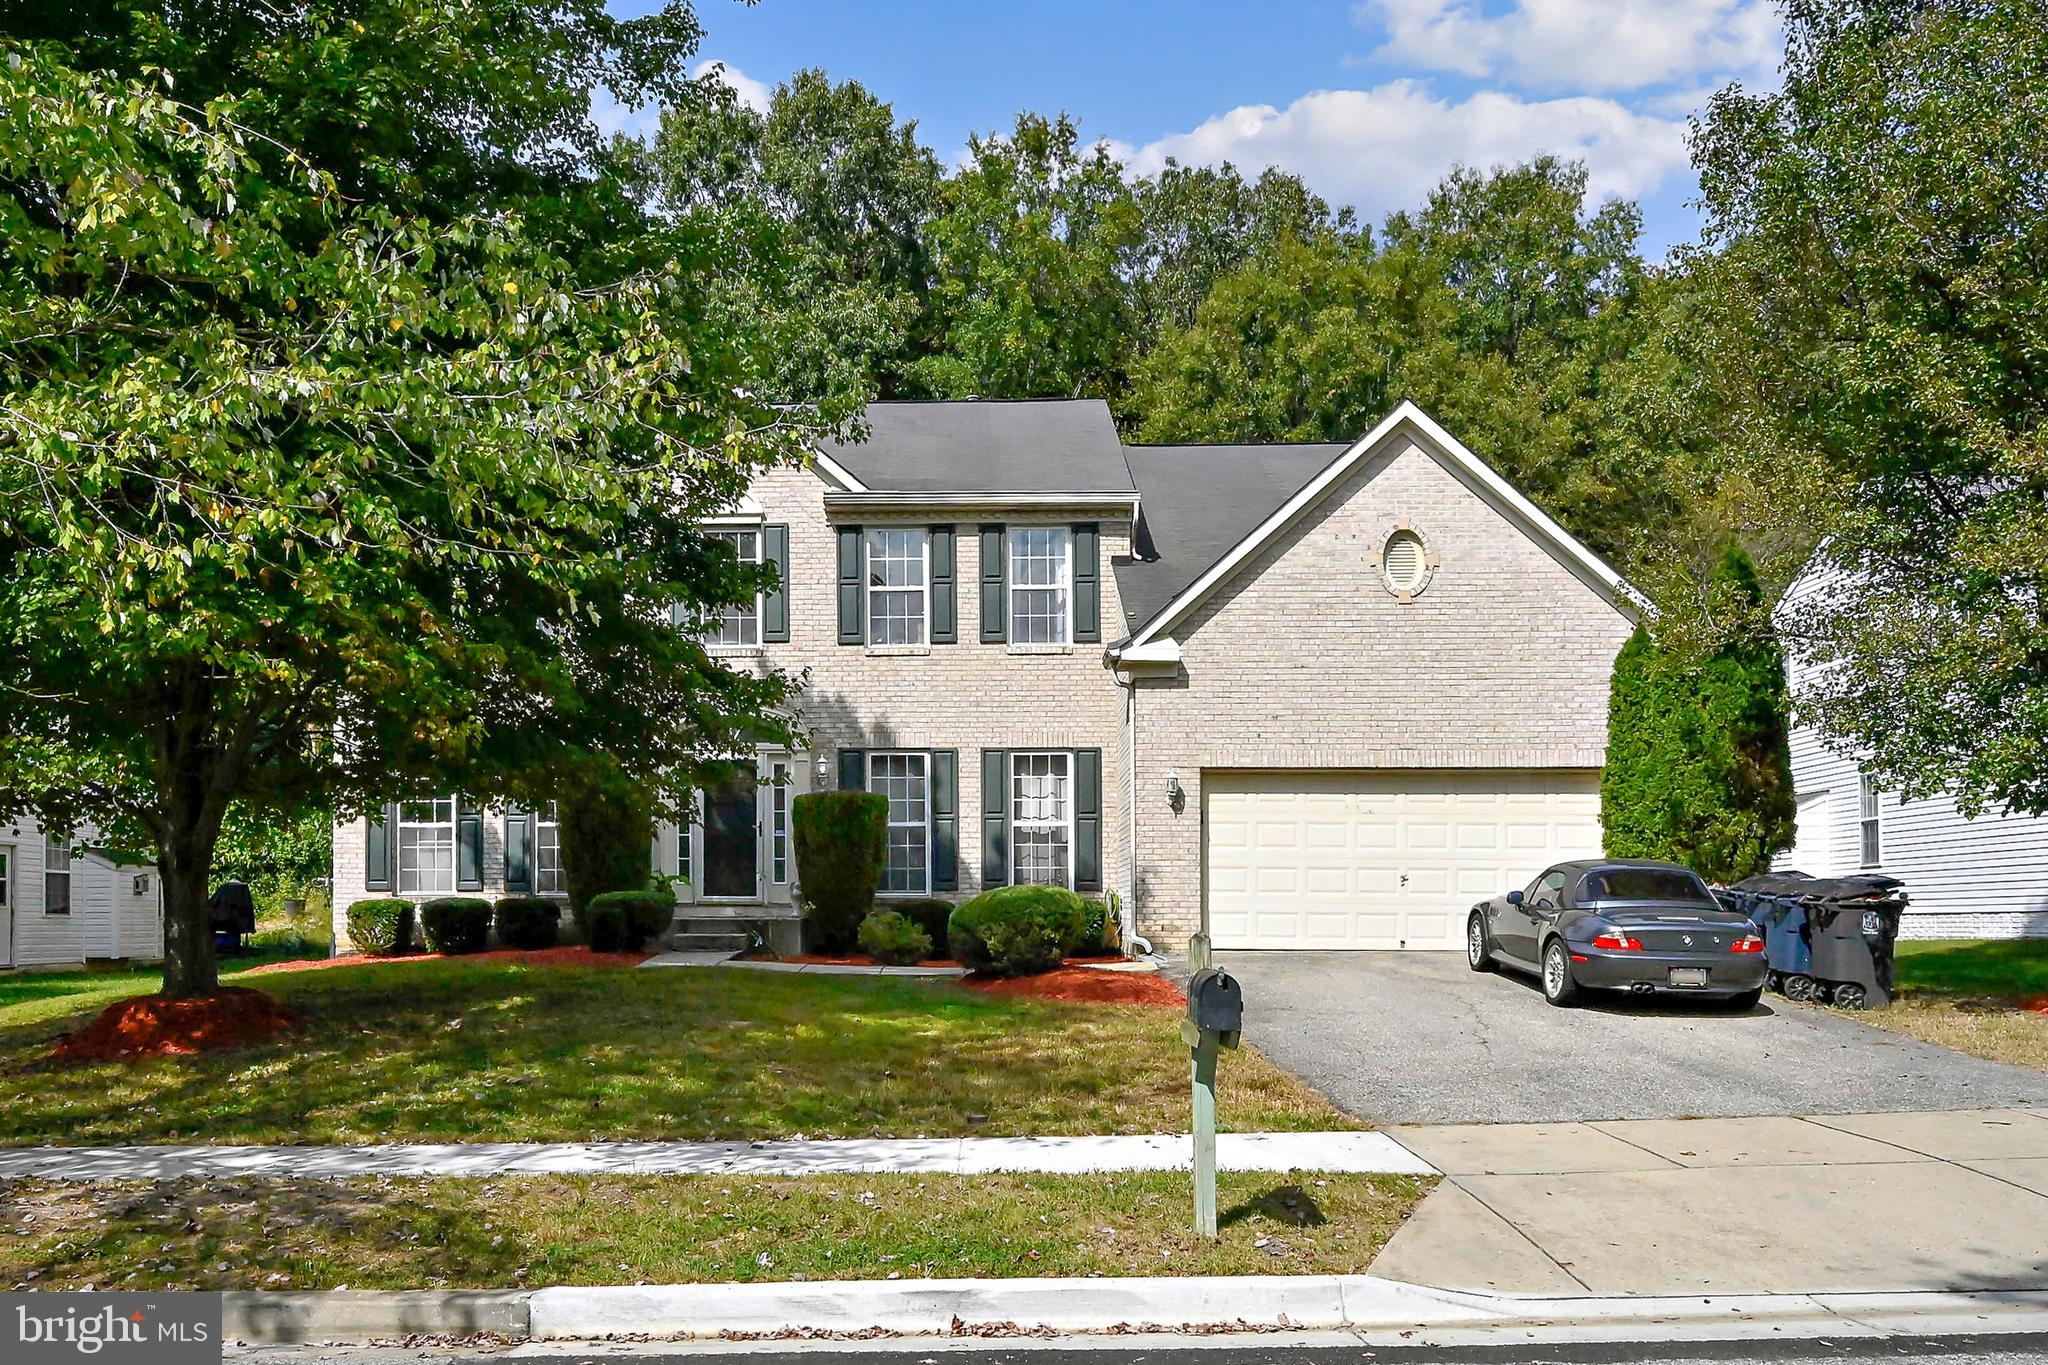 NOW AT AN AWESOME PRICE !  Your search ends here !  This beautifully maintained classic Colonial wit